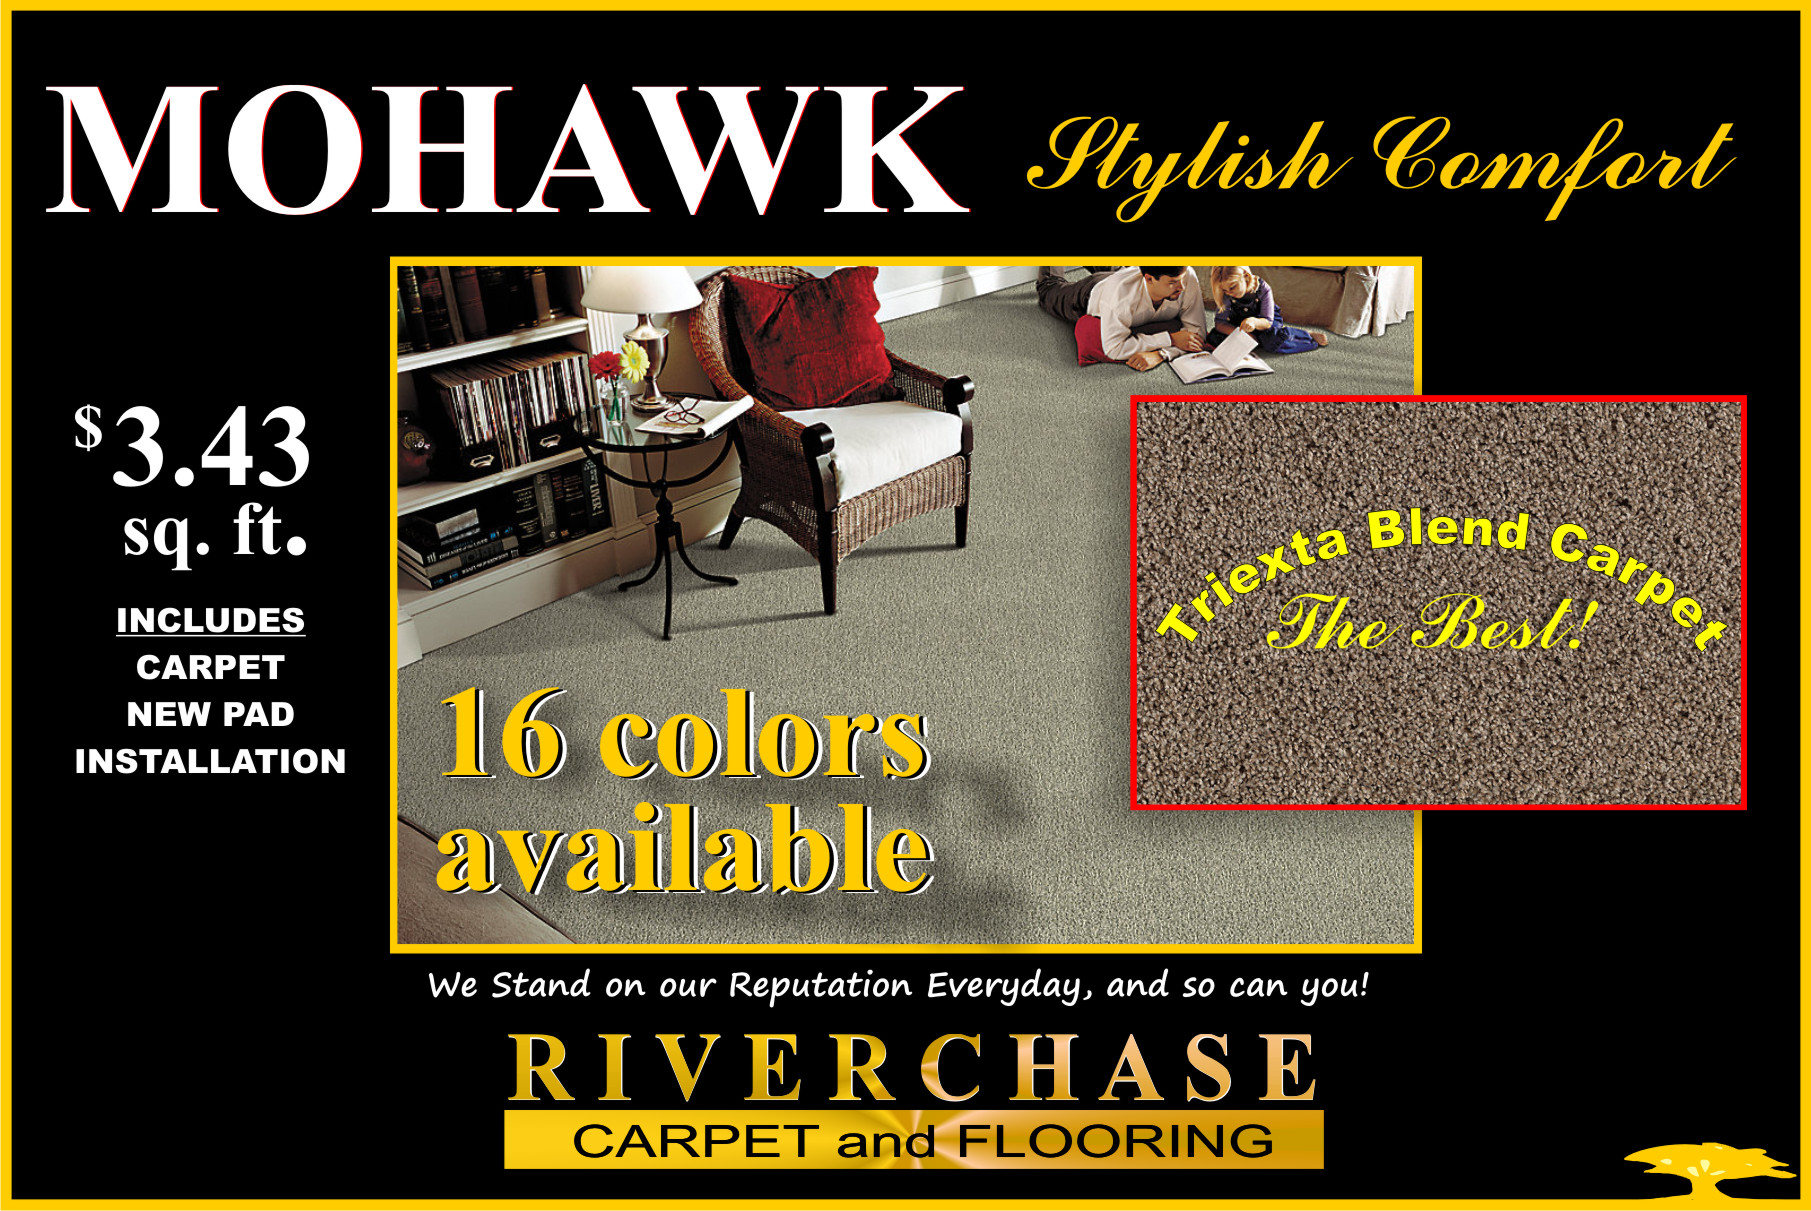 Riverchase Carpet Amp Flooring 205 985 9555